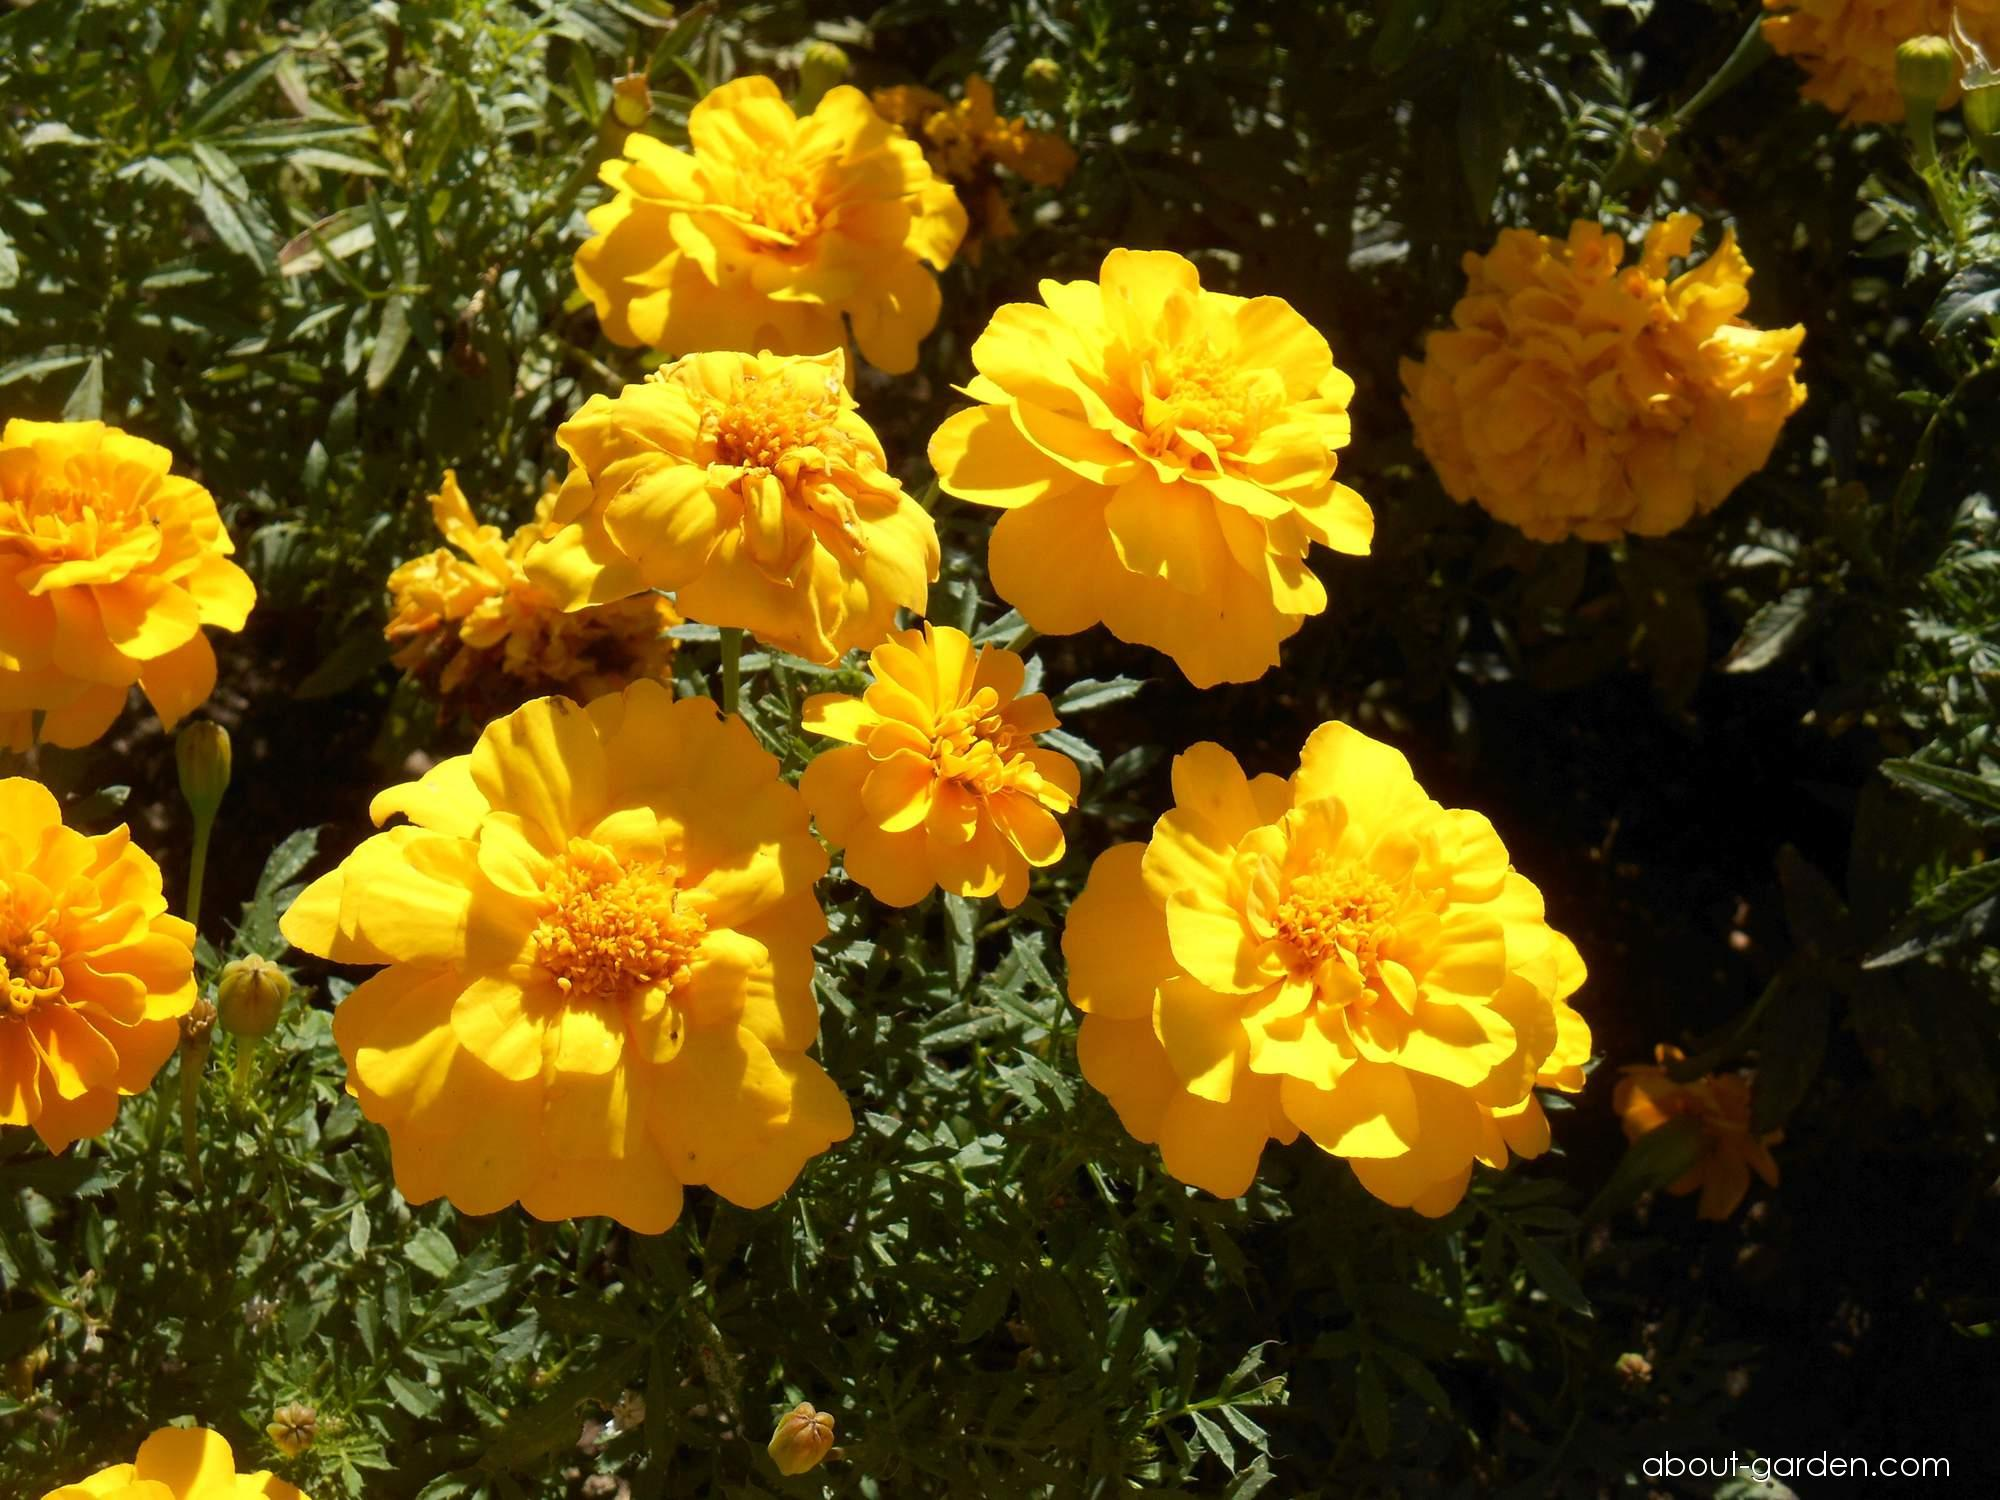 French Marigold - Tagetes patula Durango Yellow